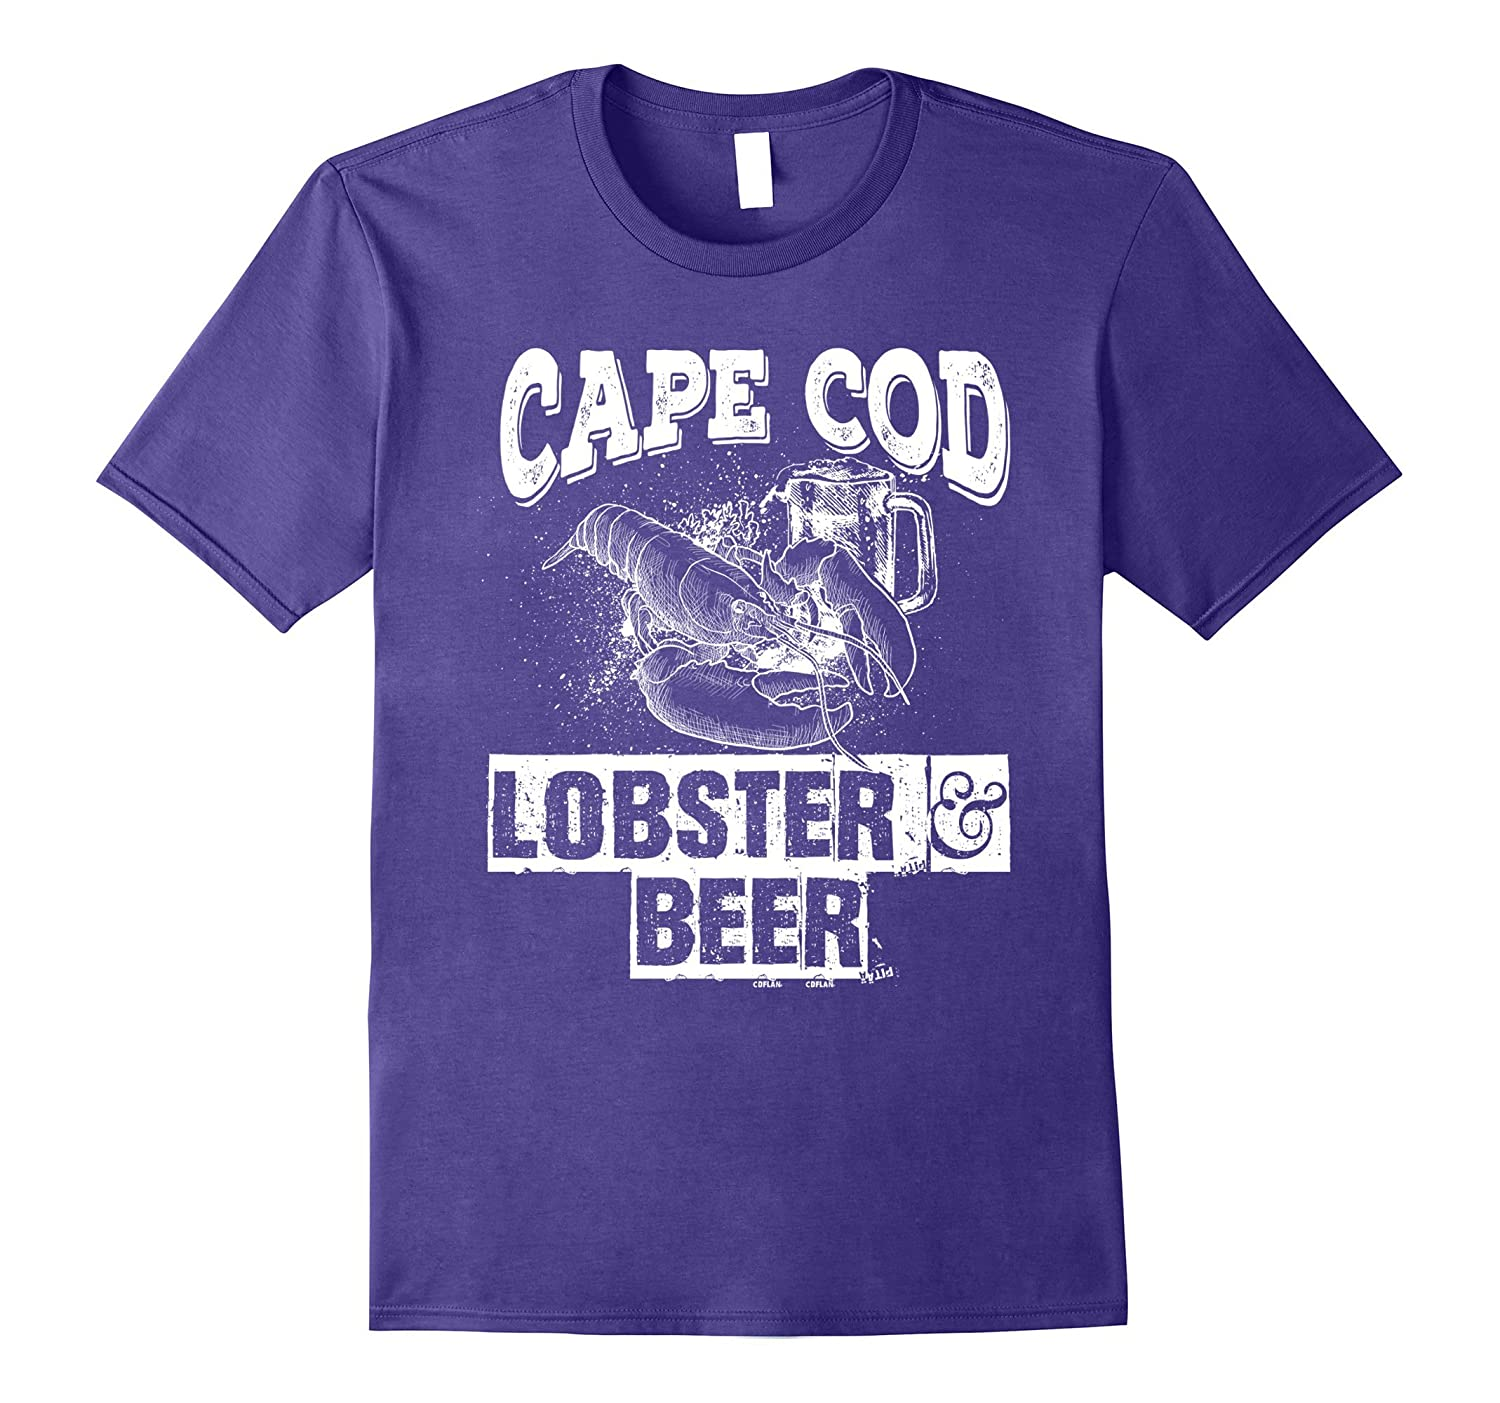 Cape Cod Apparel: Cape Cod Tshirt Teeshirt Summer Lobster And Beer Party